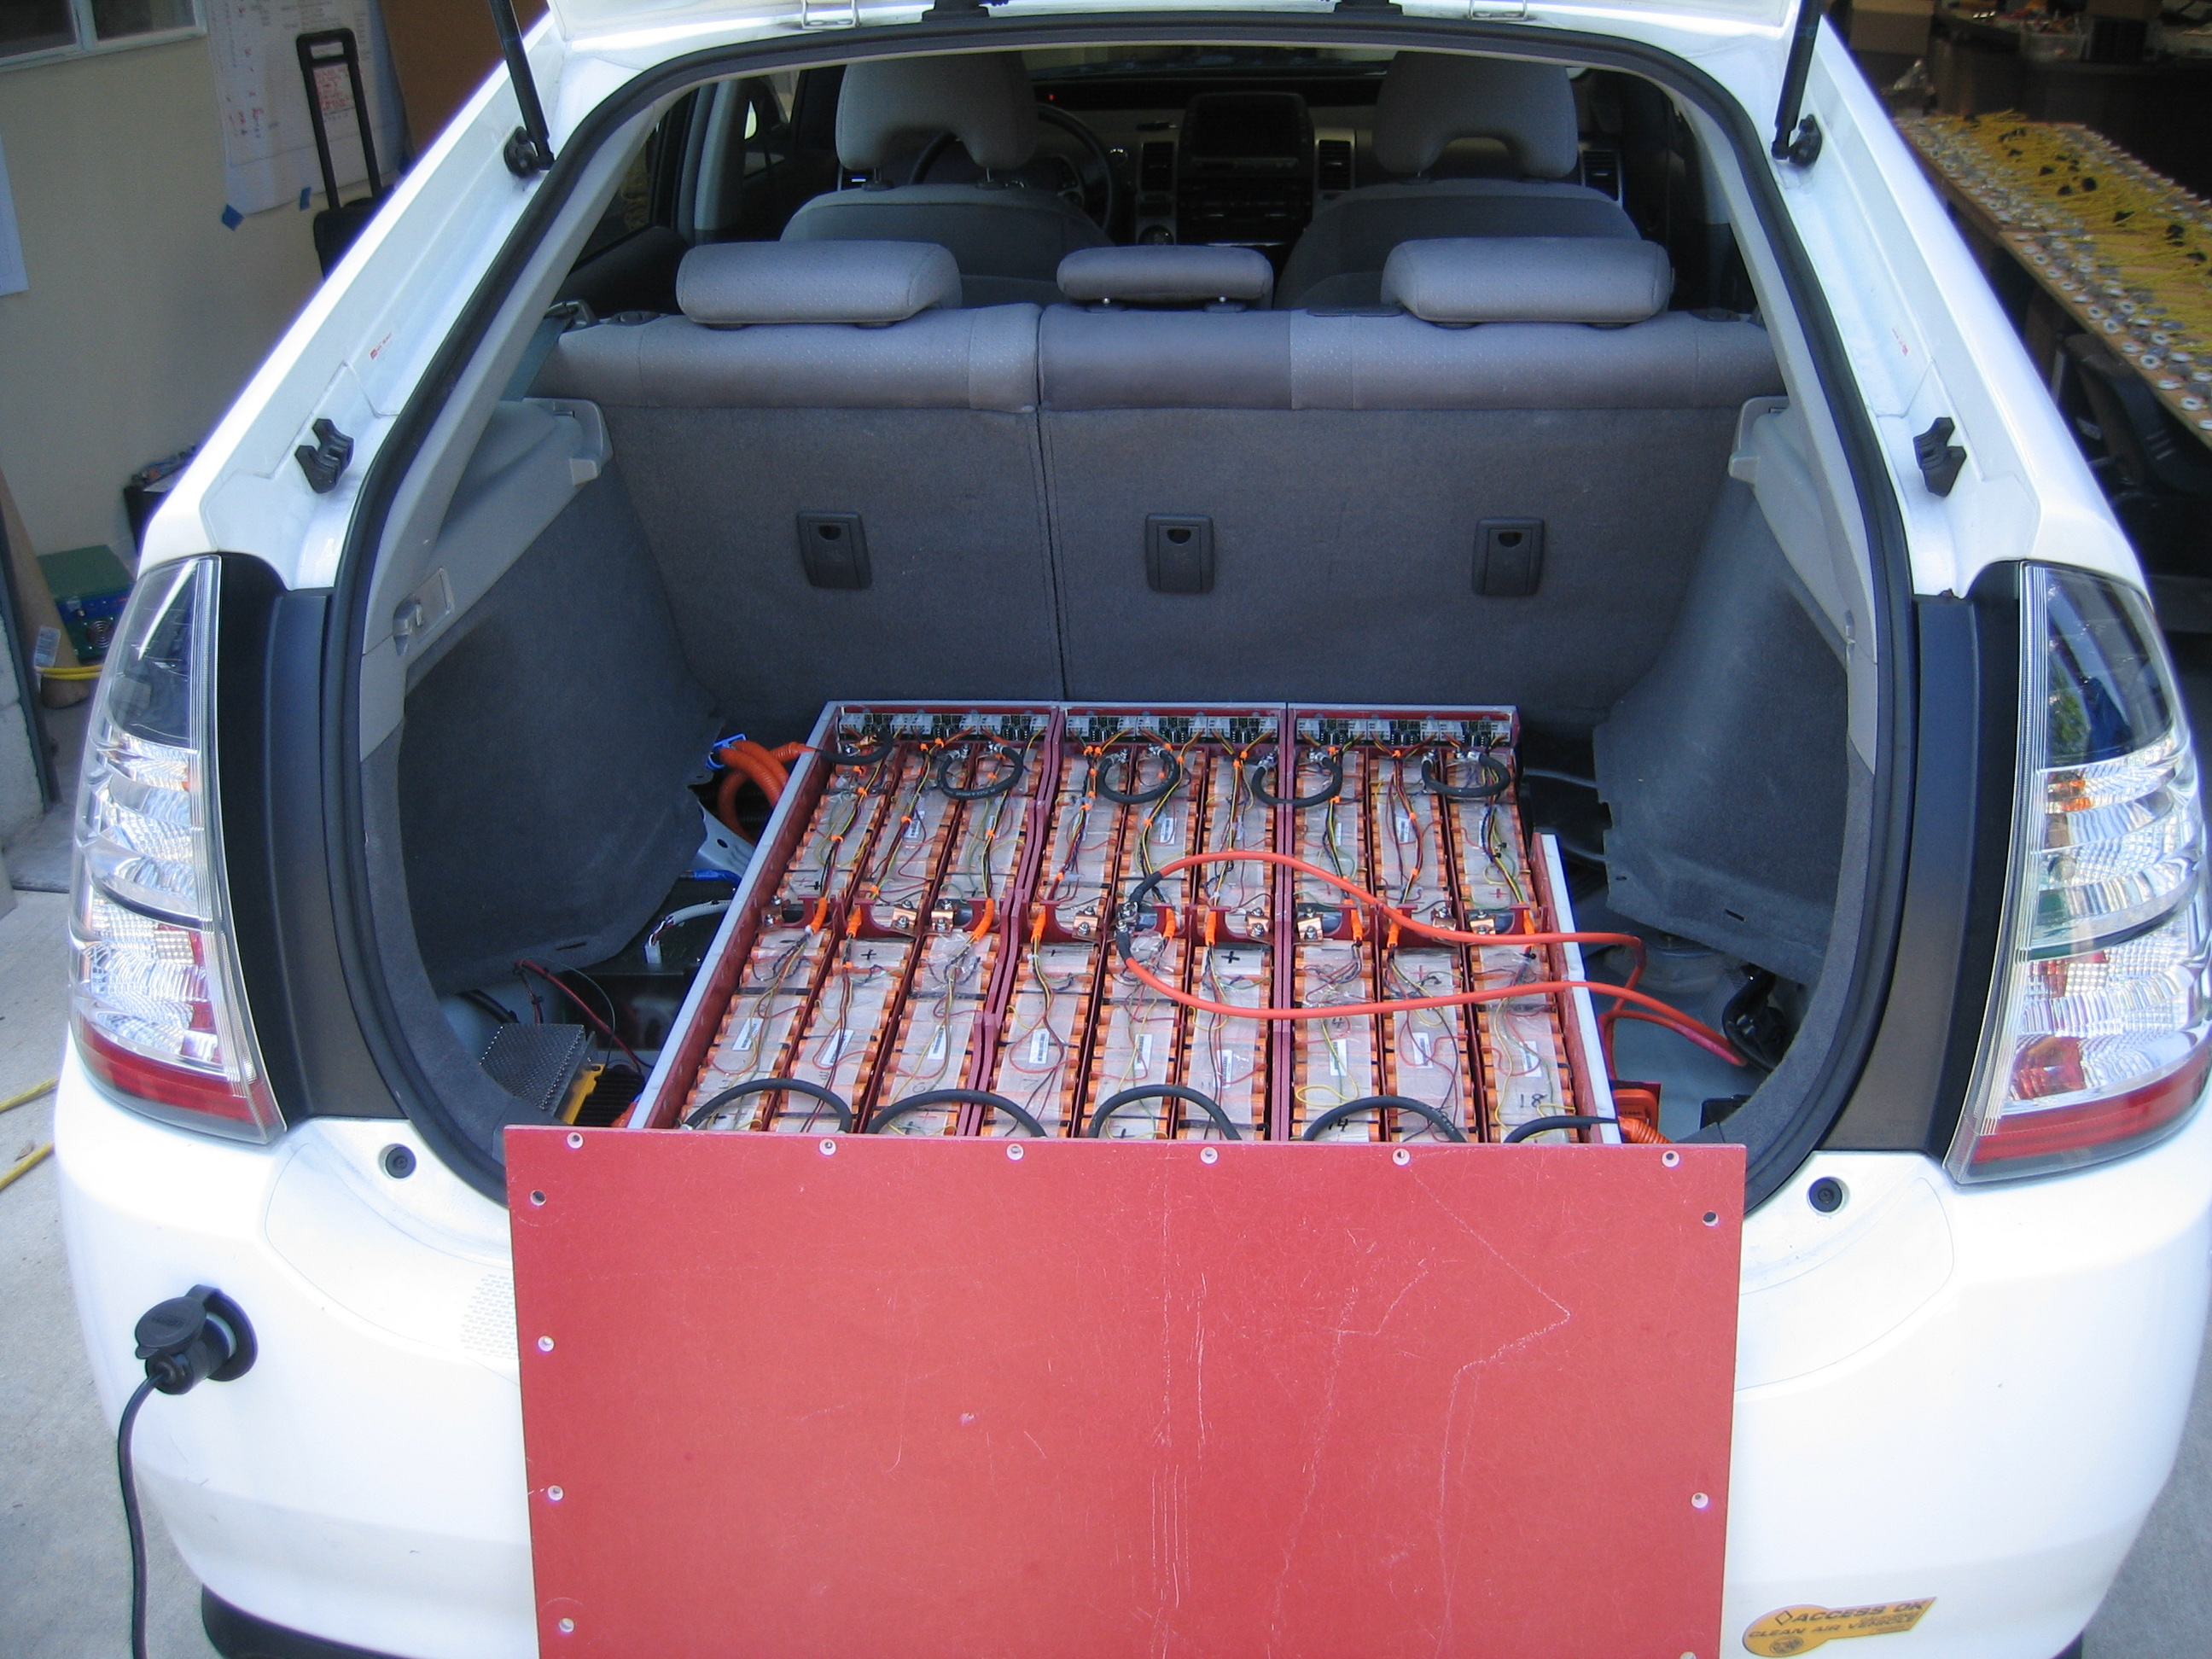 File Felix Car Batteries Full Jpg